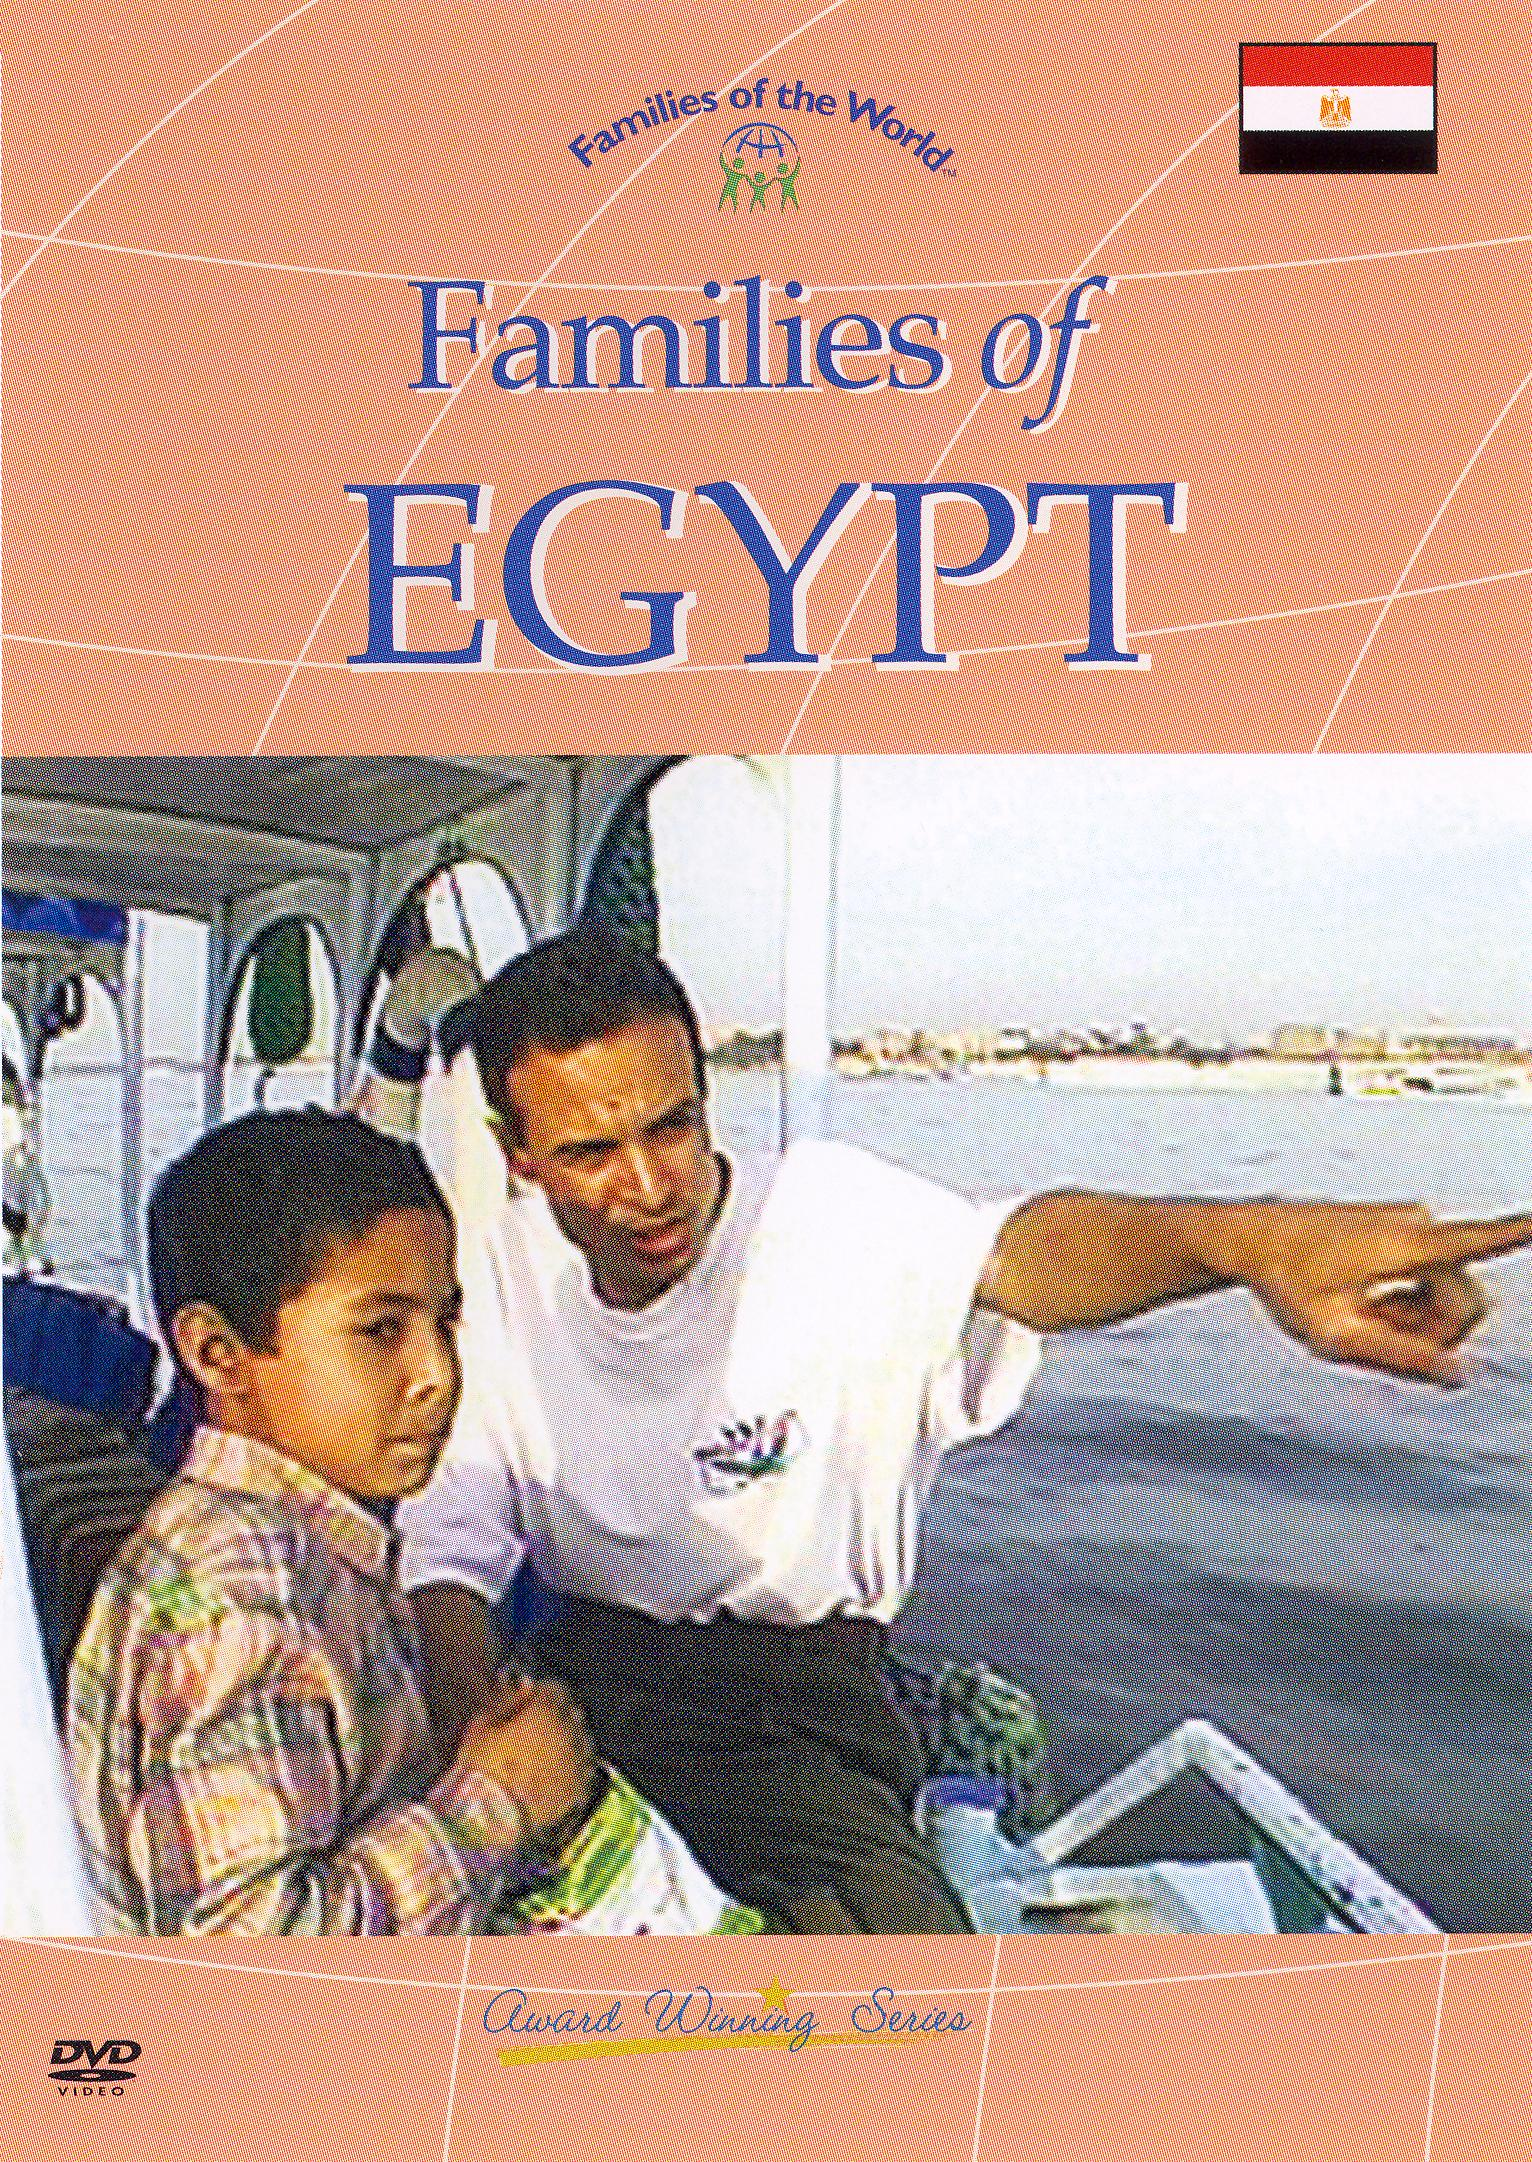 Families of the World: Families of Egypt (2002)